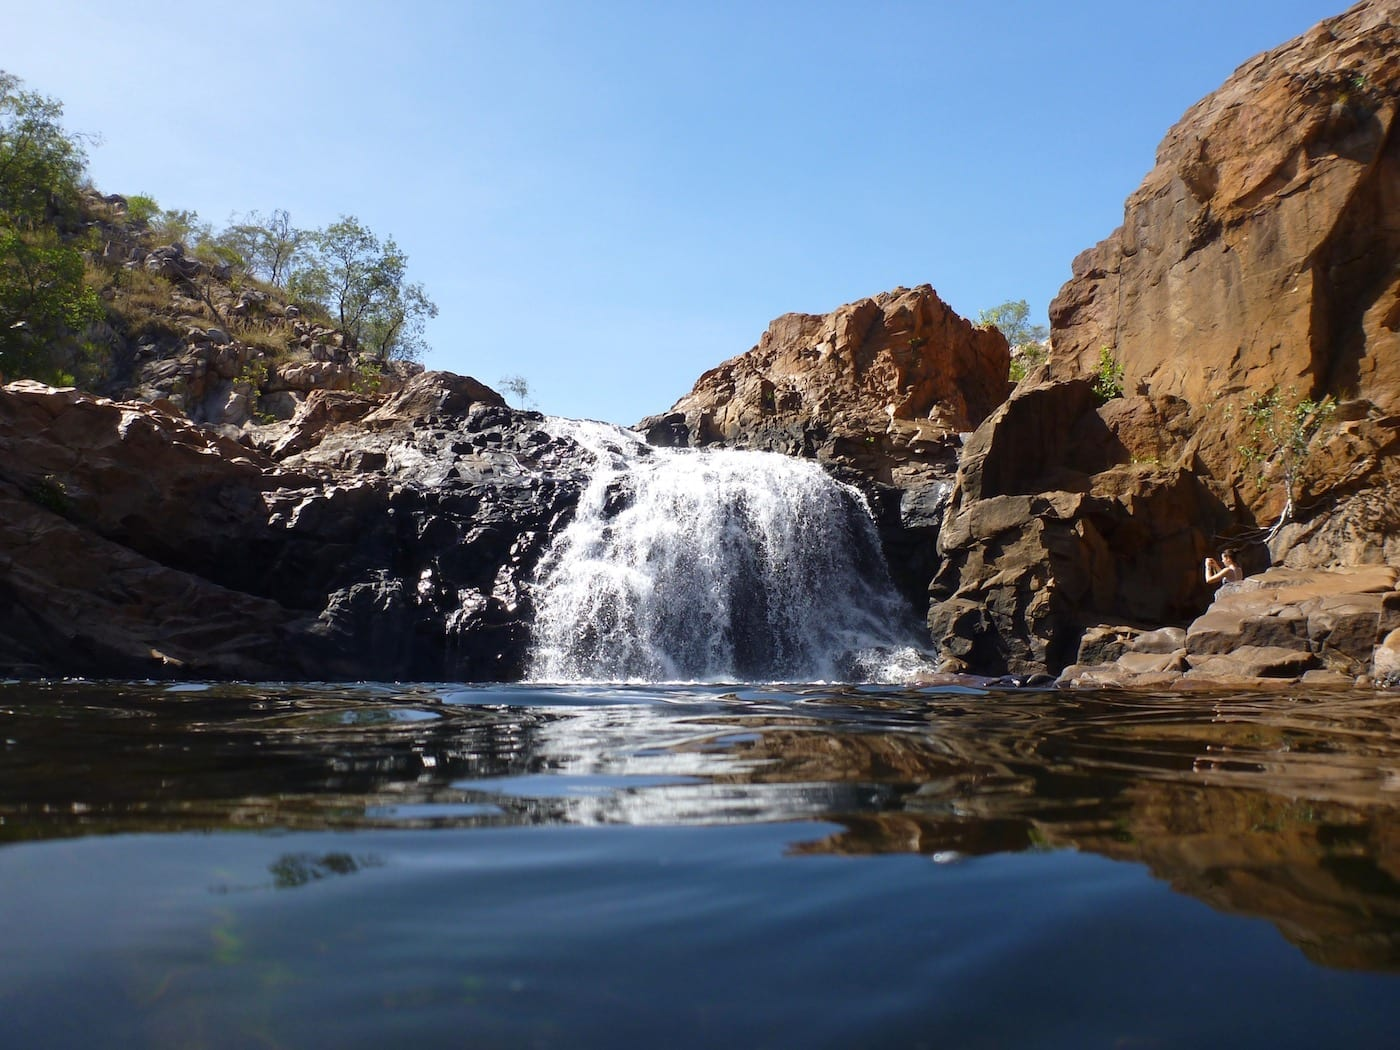 Upper Pool, Leliyn (Edith Falls).